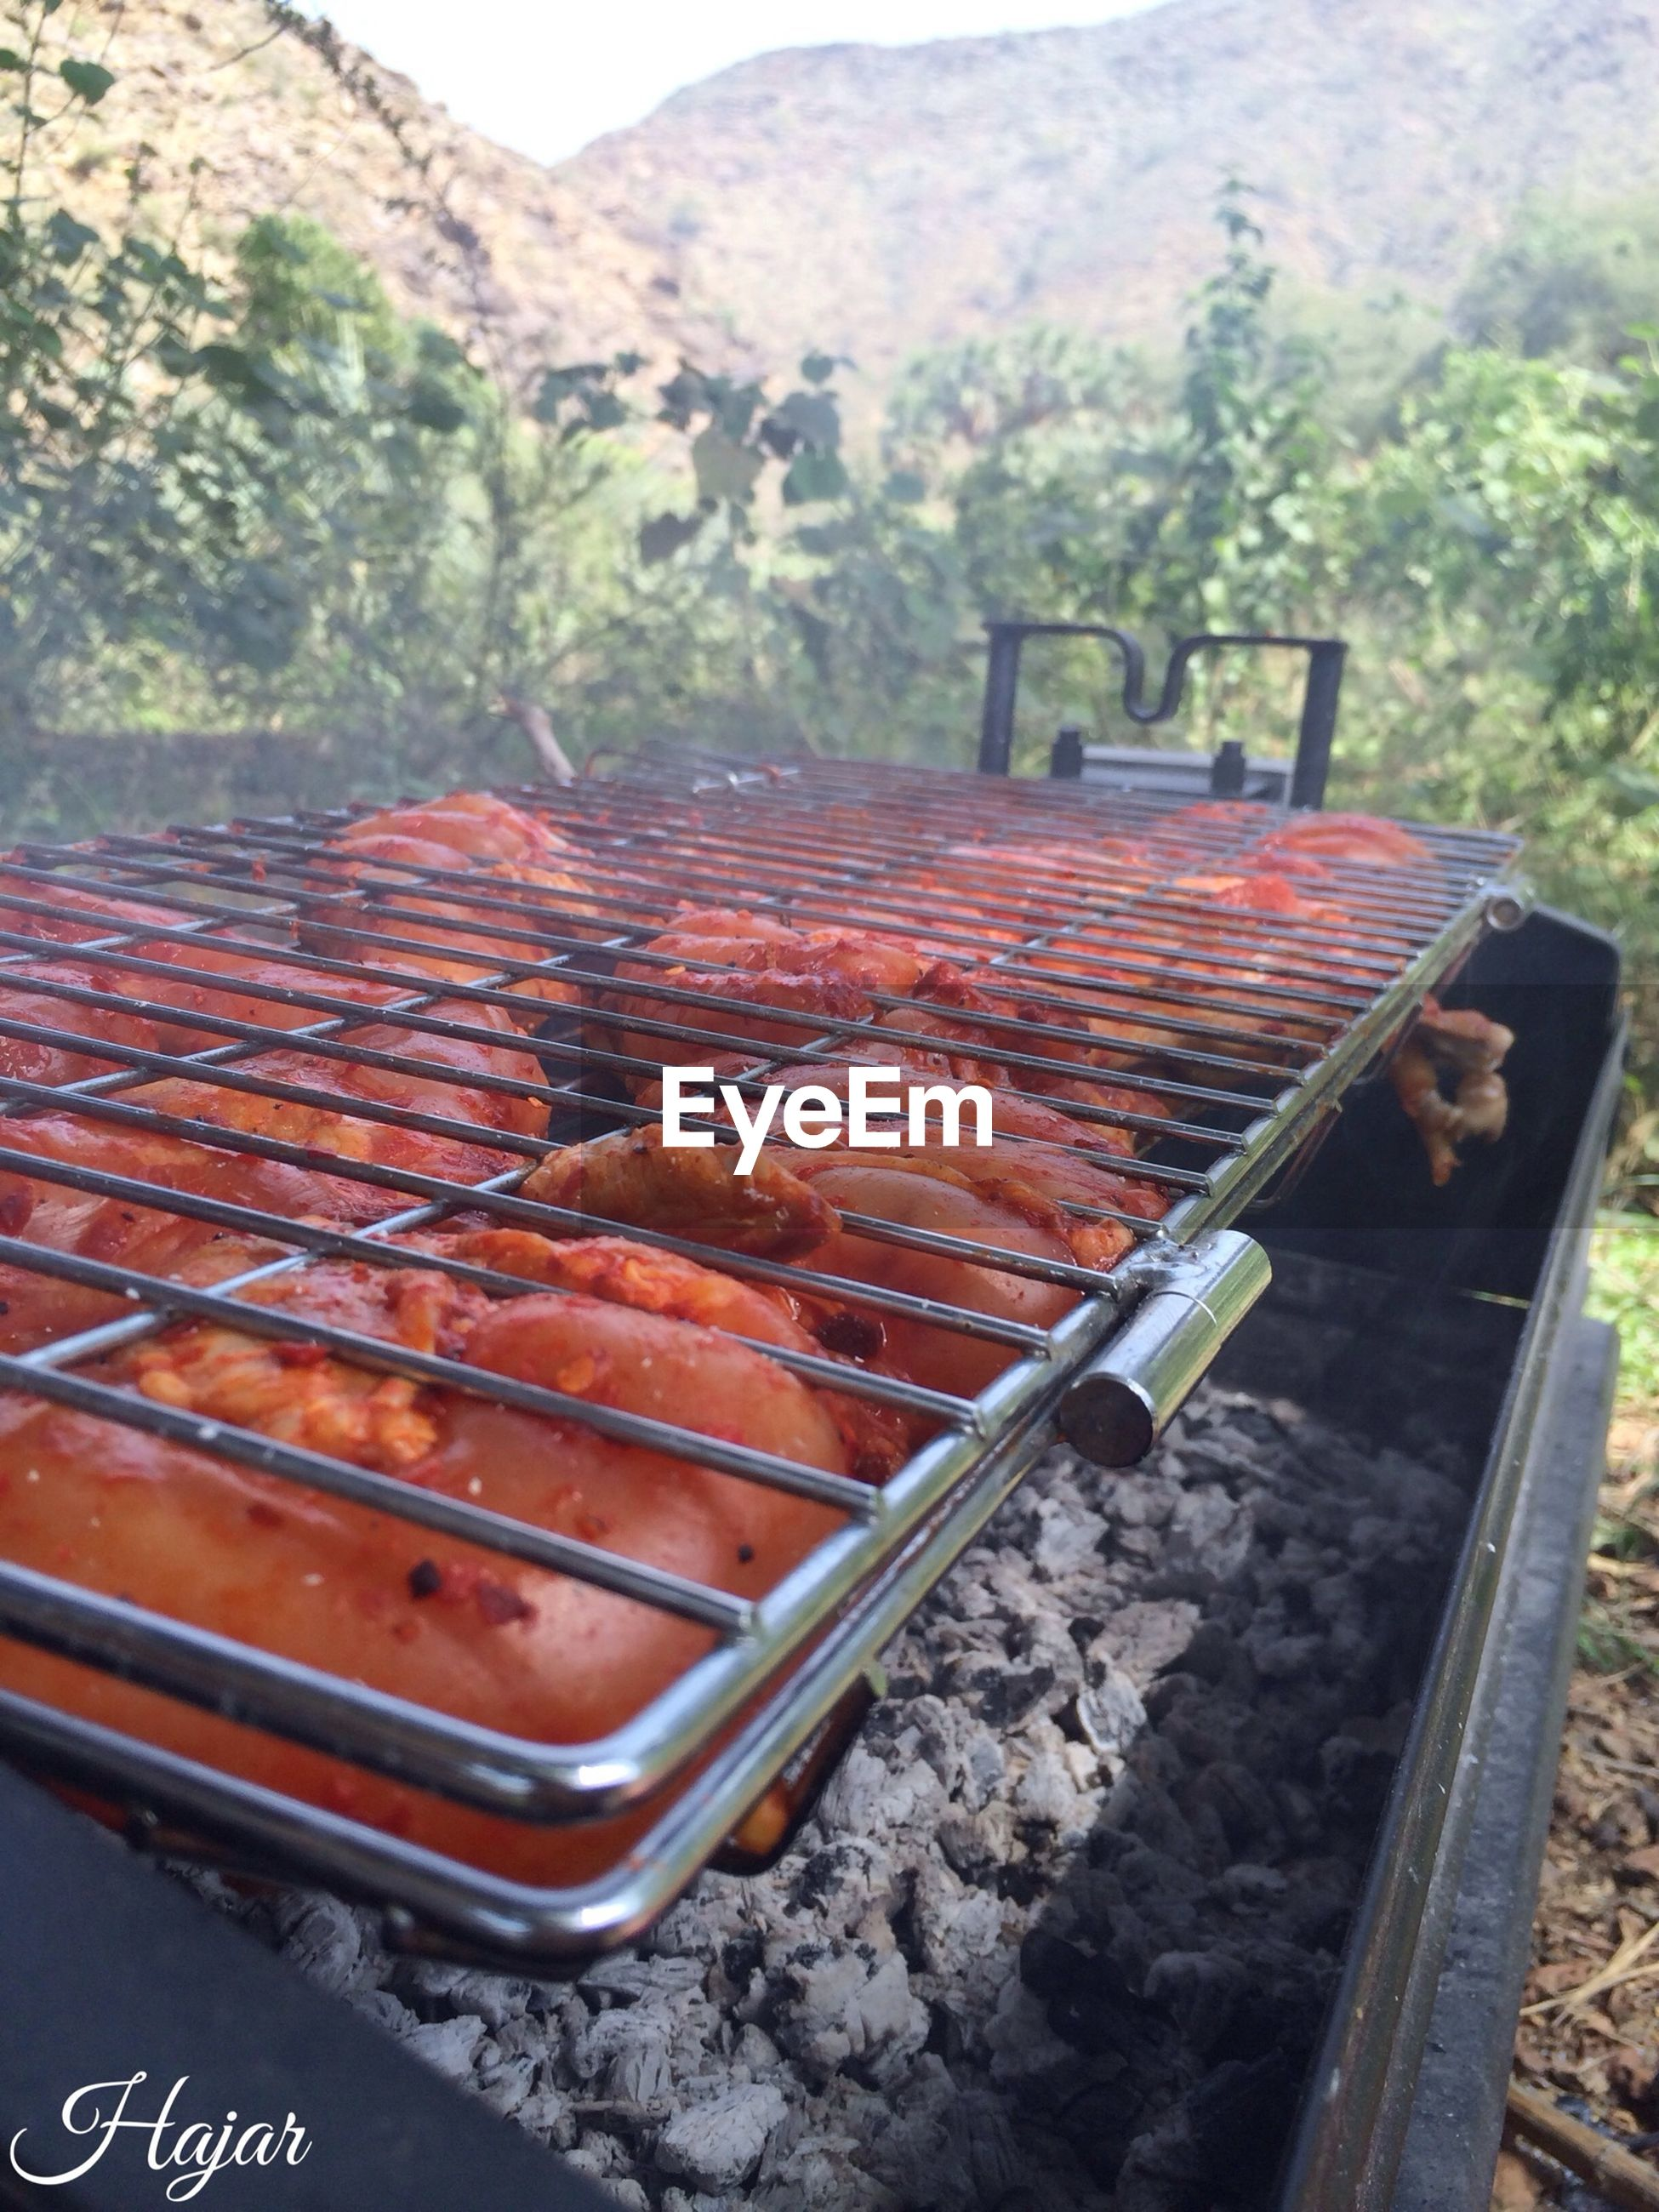 food and drink, food, heat - temperature, day, high angle view, metal, barbecue grill, outdoors, meat, barbecue, grilled, no people, preparation, close-up, cooking, transportation, freshness, container, railroad track, healthy eating